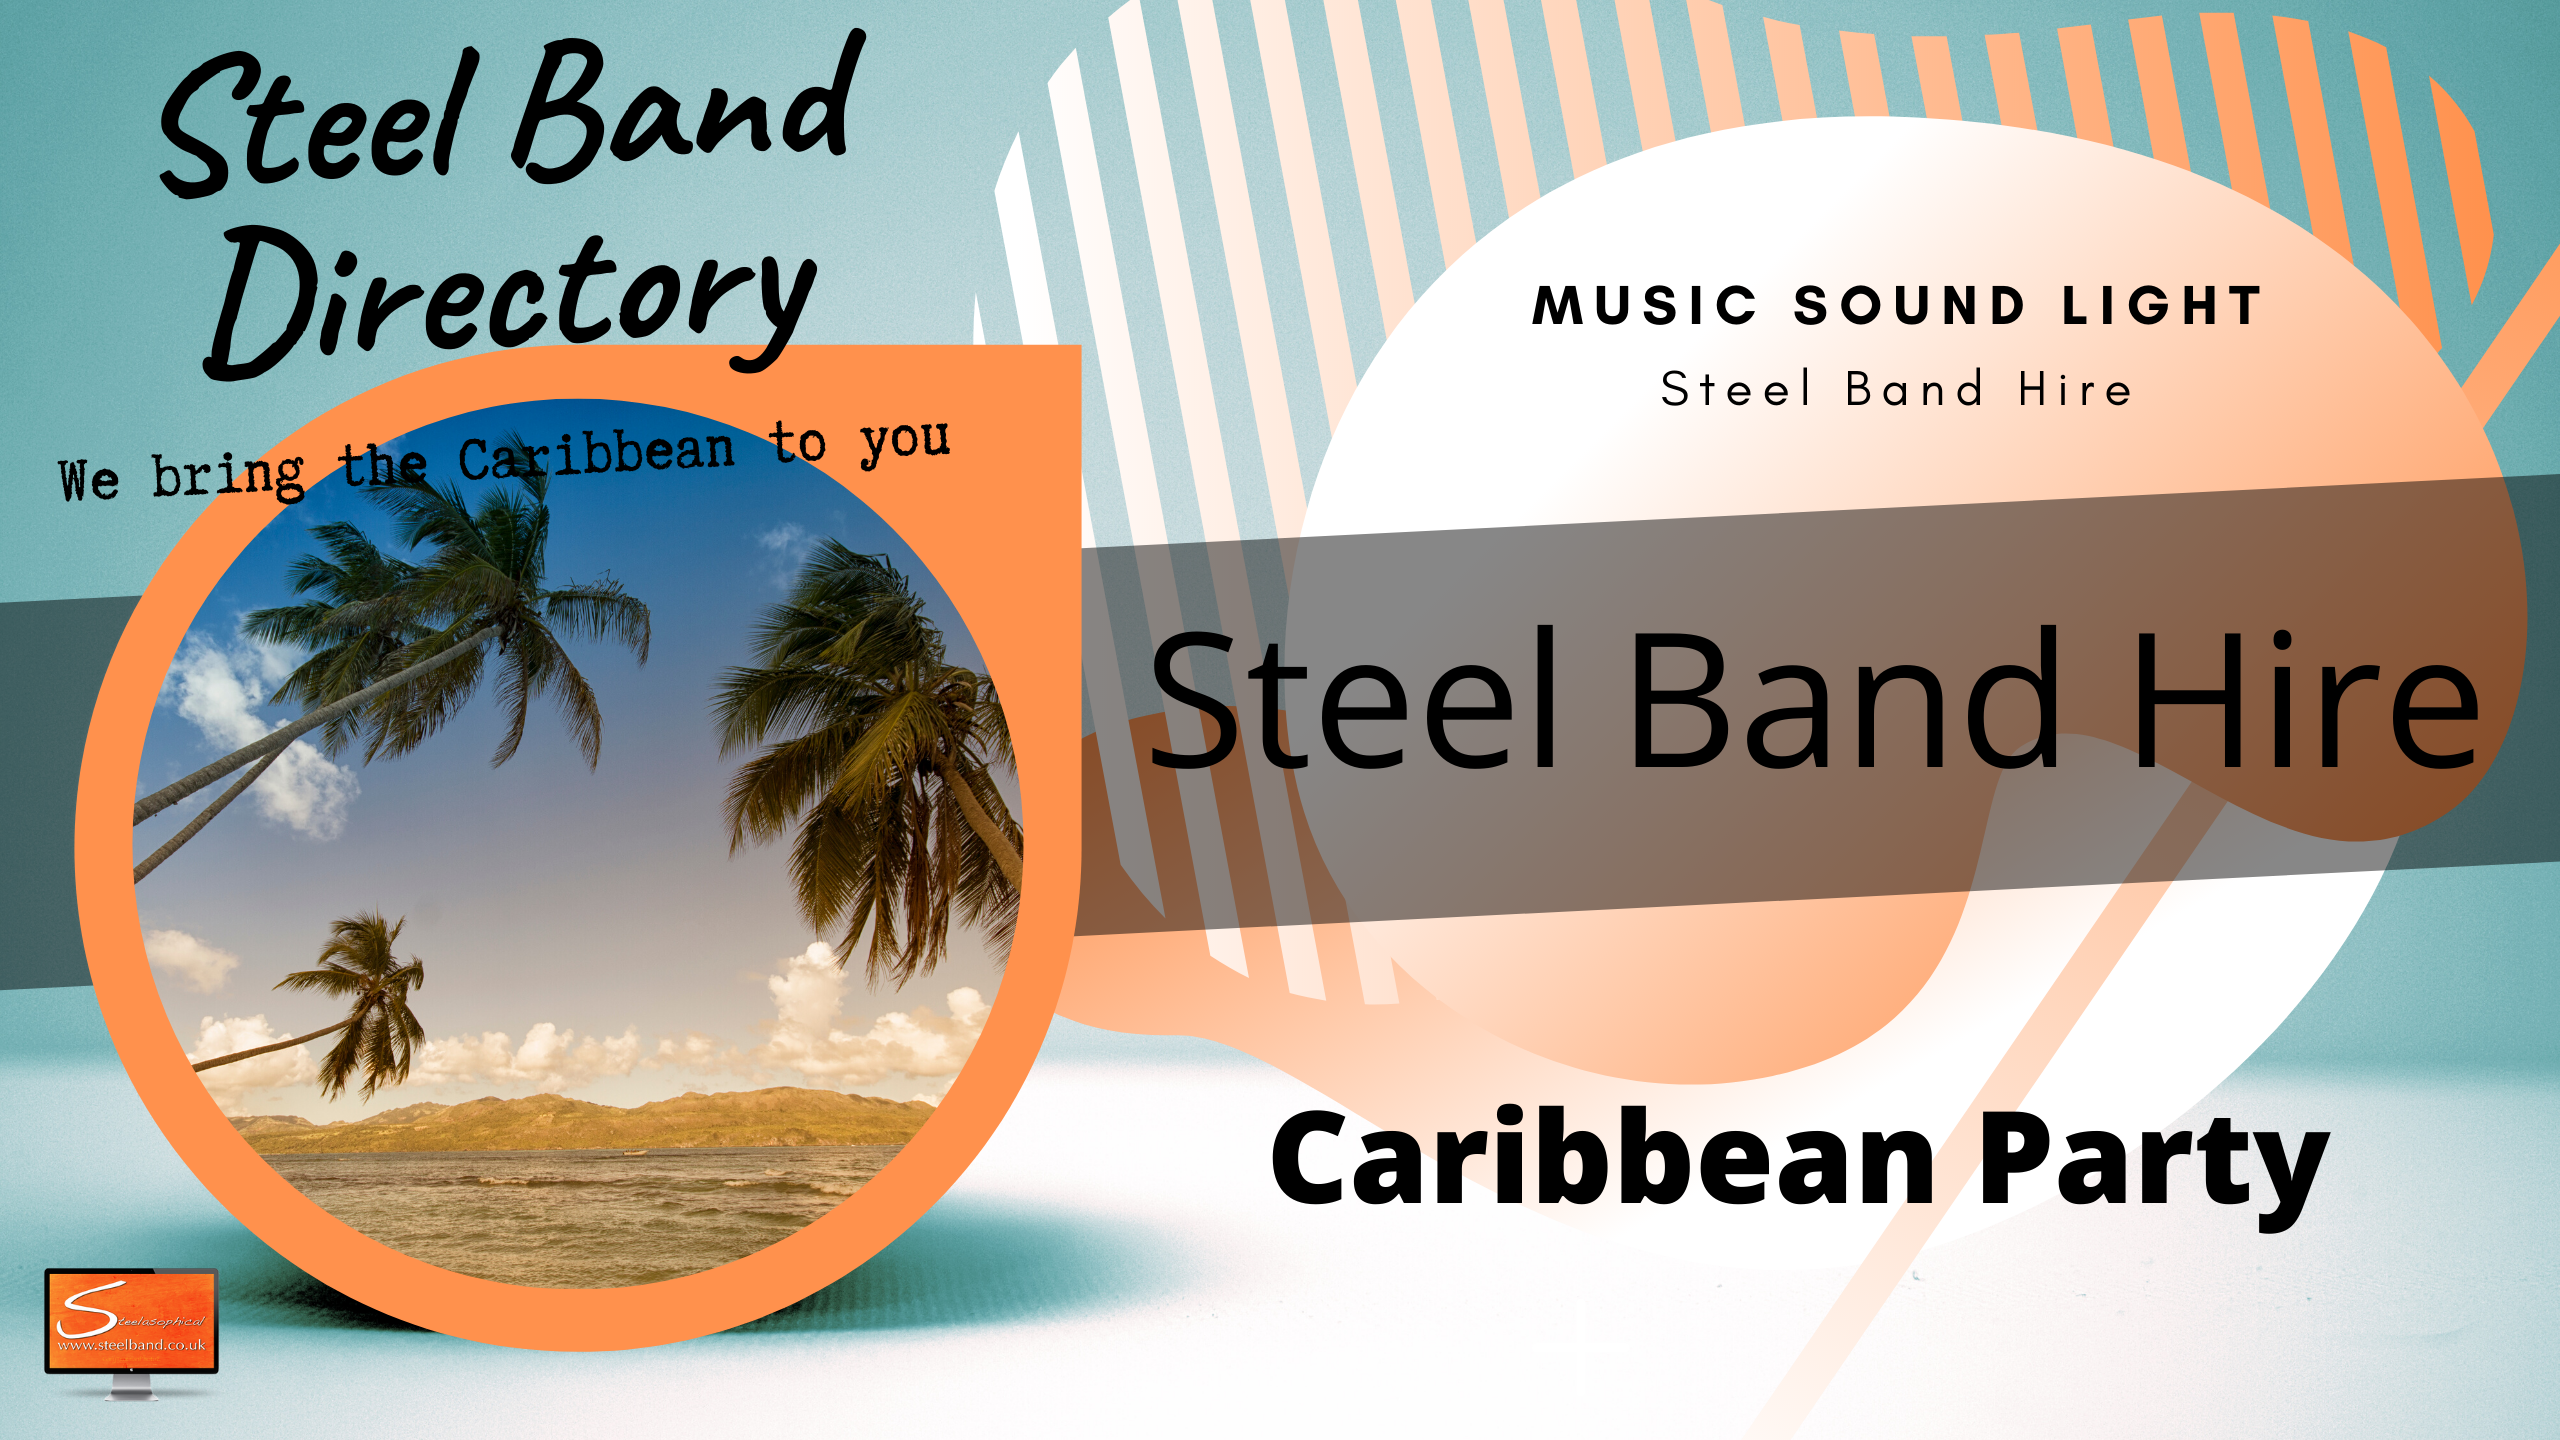 Caribbean Island steel bands for hire uk